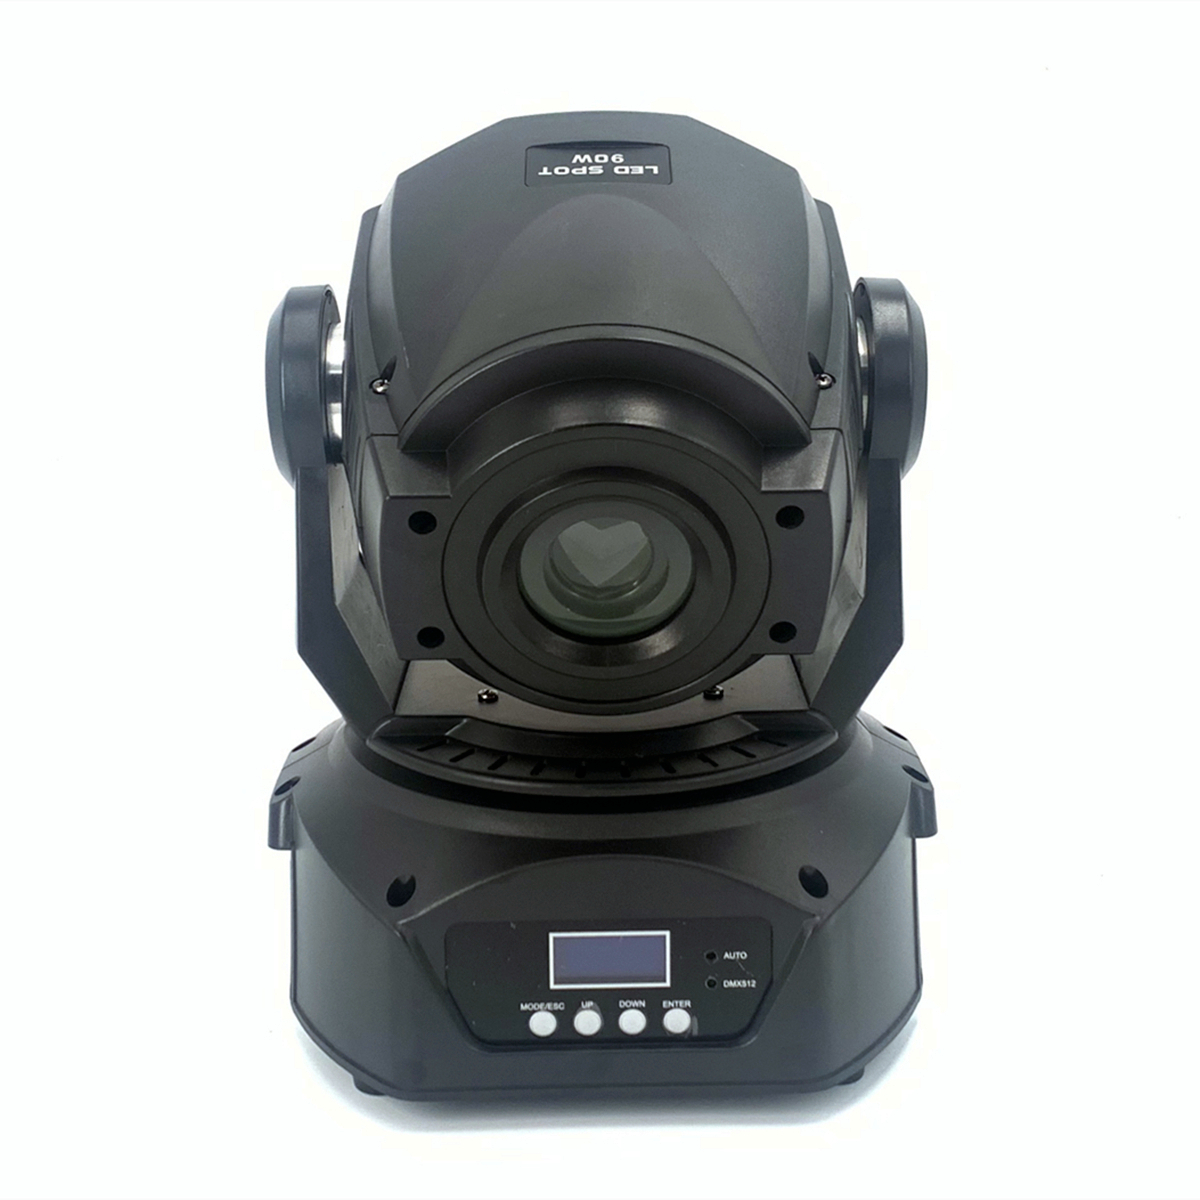 LED 90W Moving Head Gobo Light With Roto Gobos 3 Face Roto Prism DMX Controller LED Spot Moving Head Light  Disco Dj Stage Light